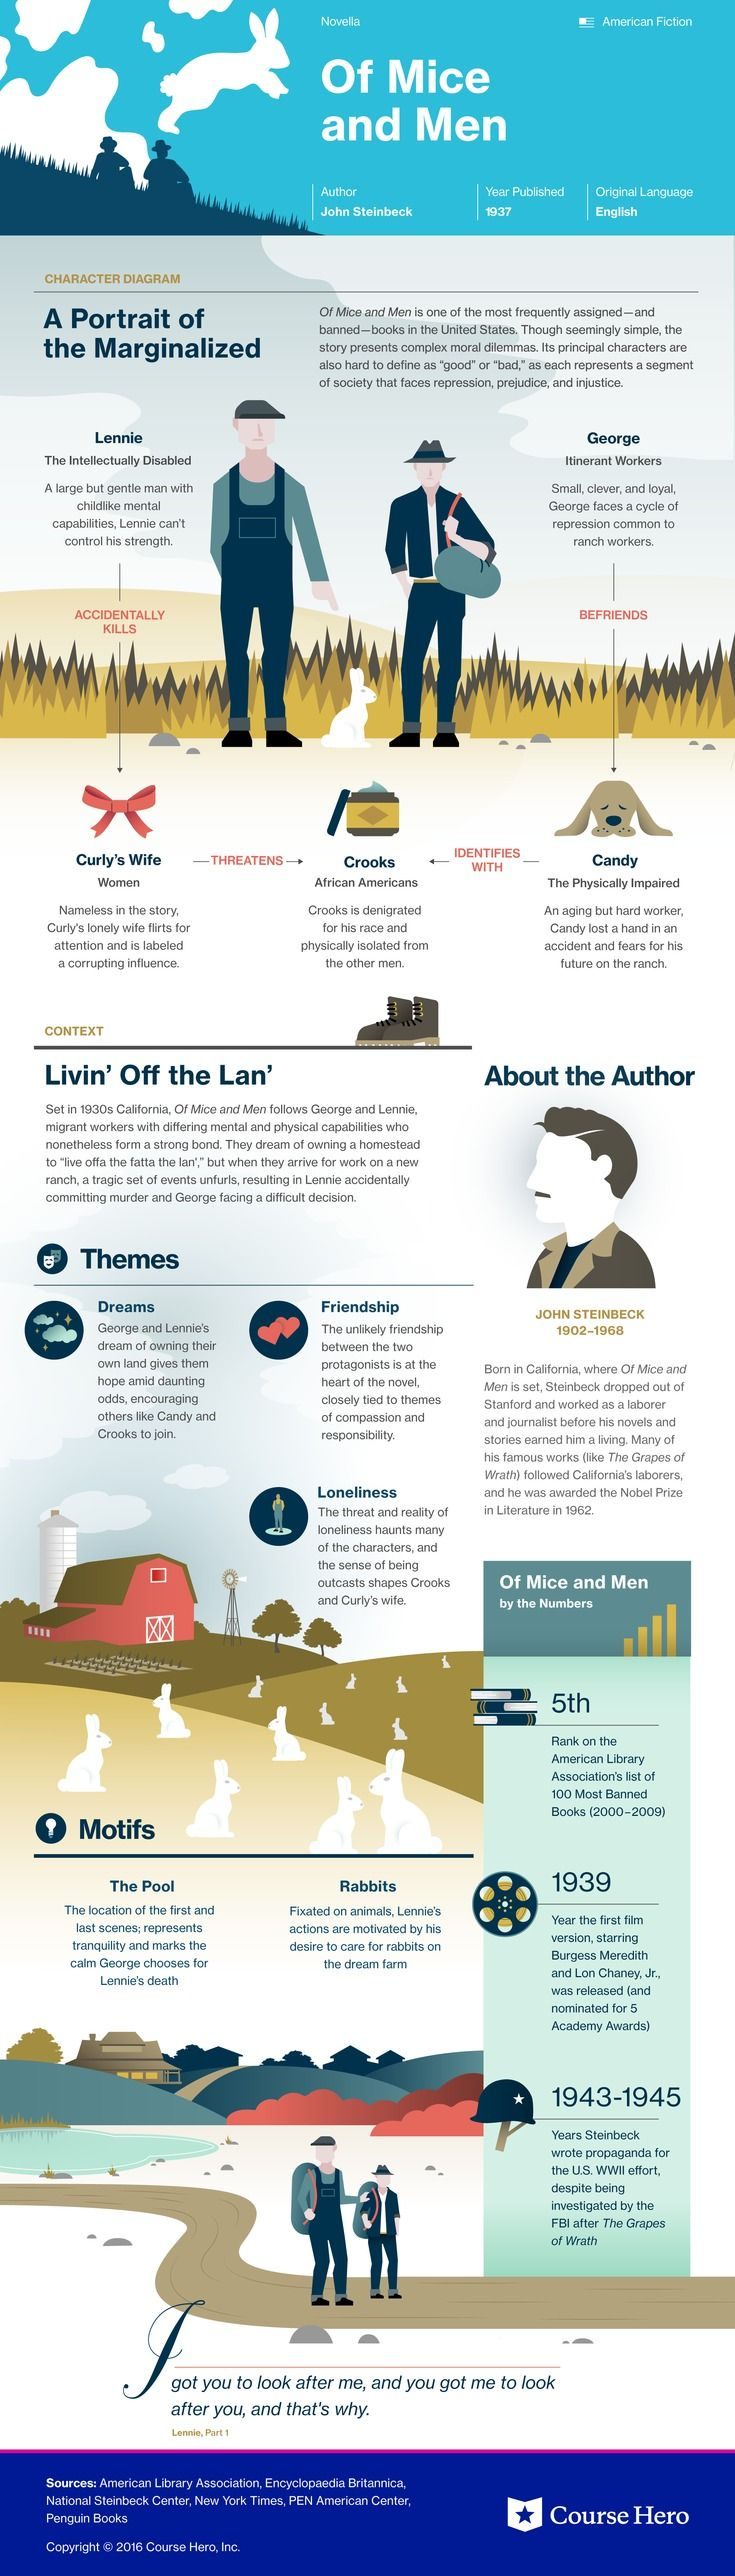 images about literature infographic course hero on john steinbeck s of mice and men chapter summary summaries for every chapter including a of mice and men chapter summary chart to help you understand